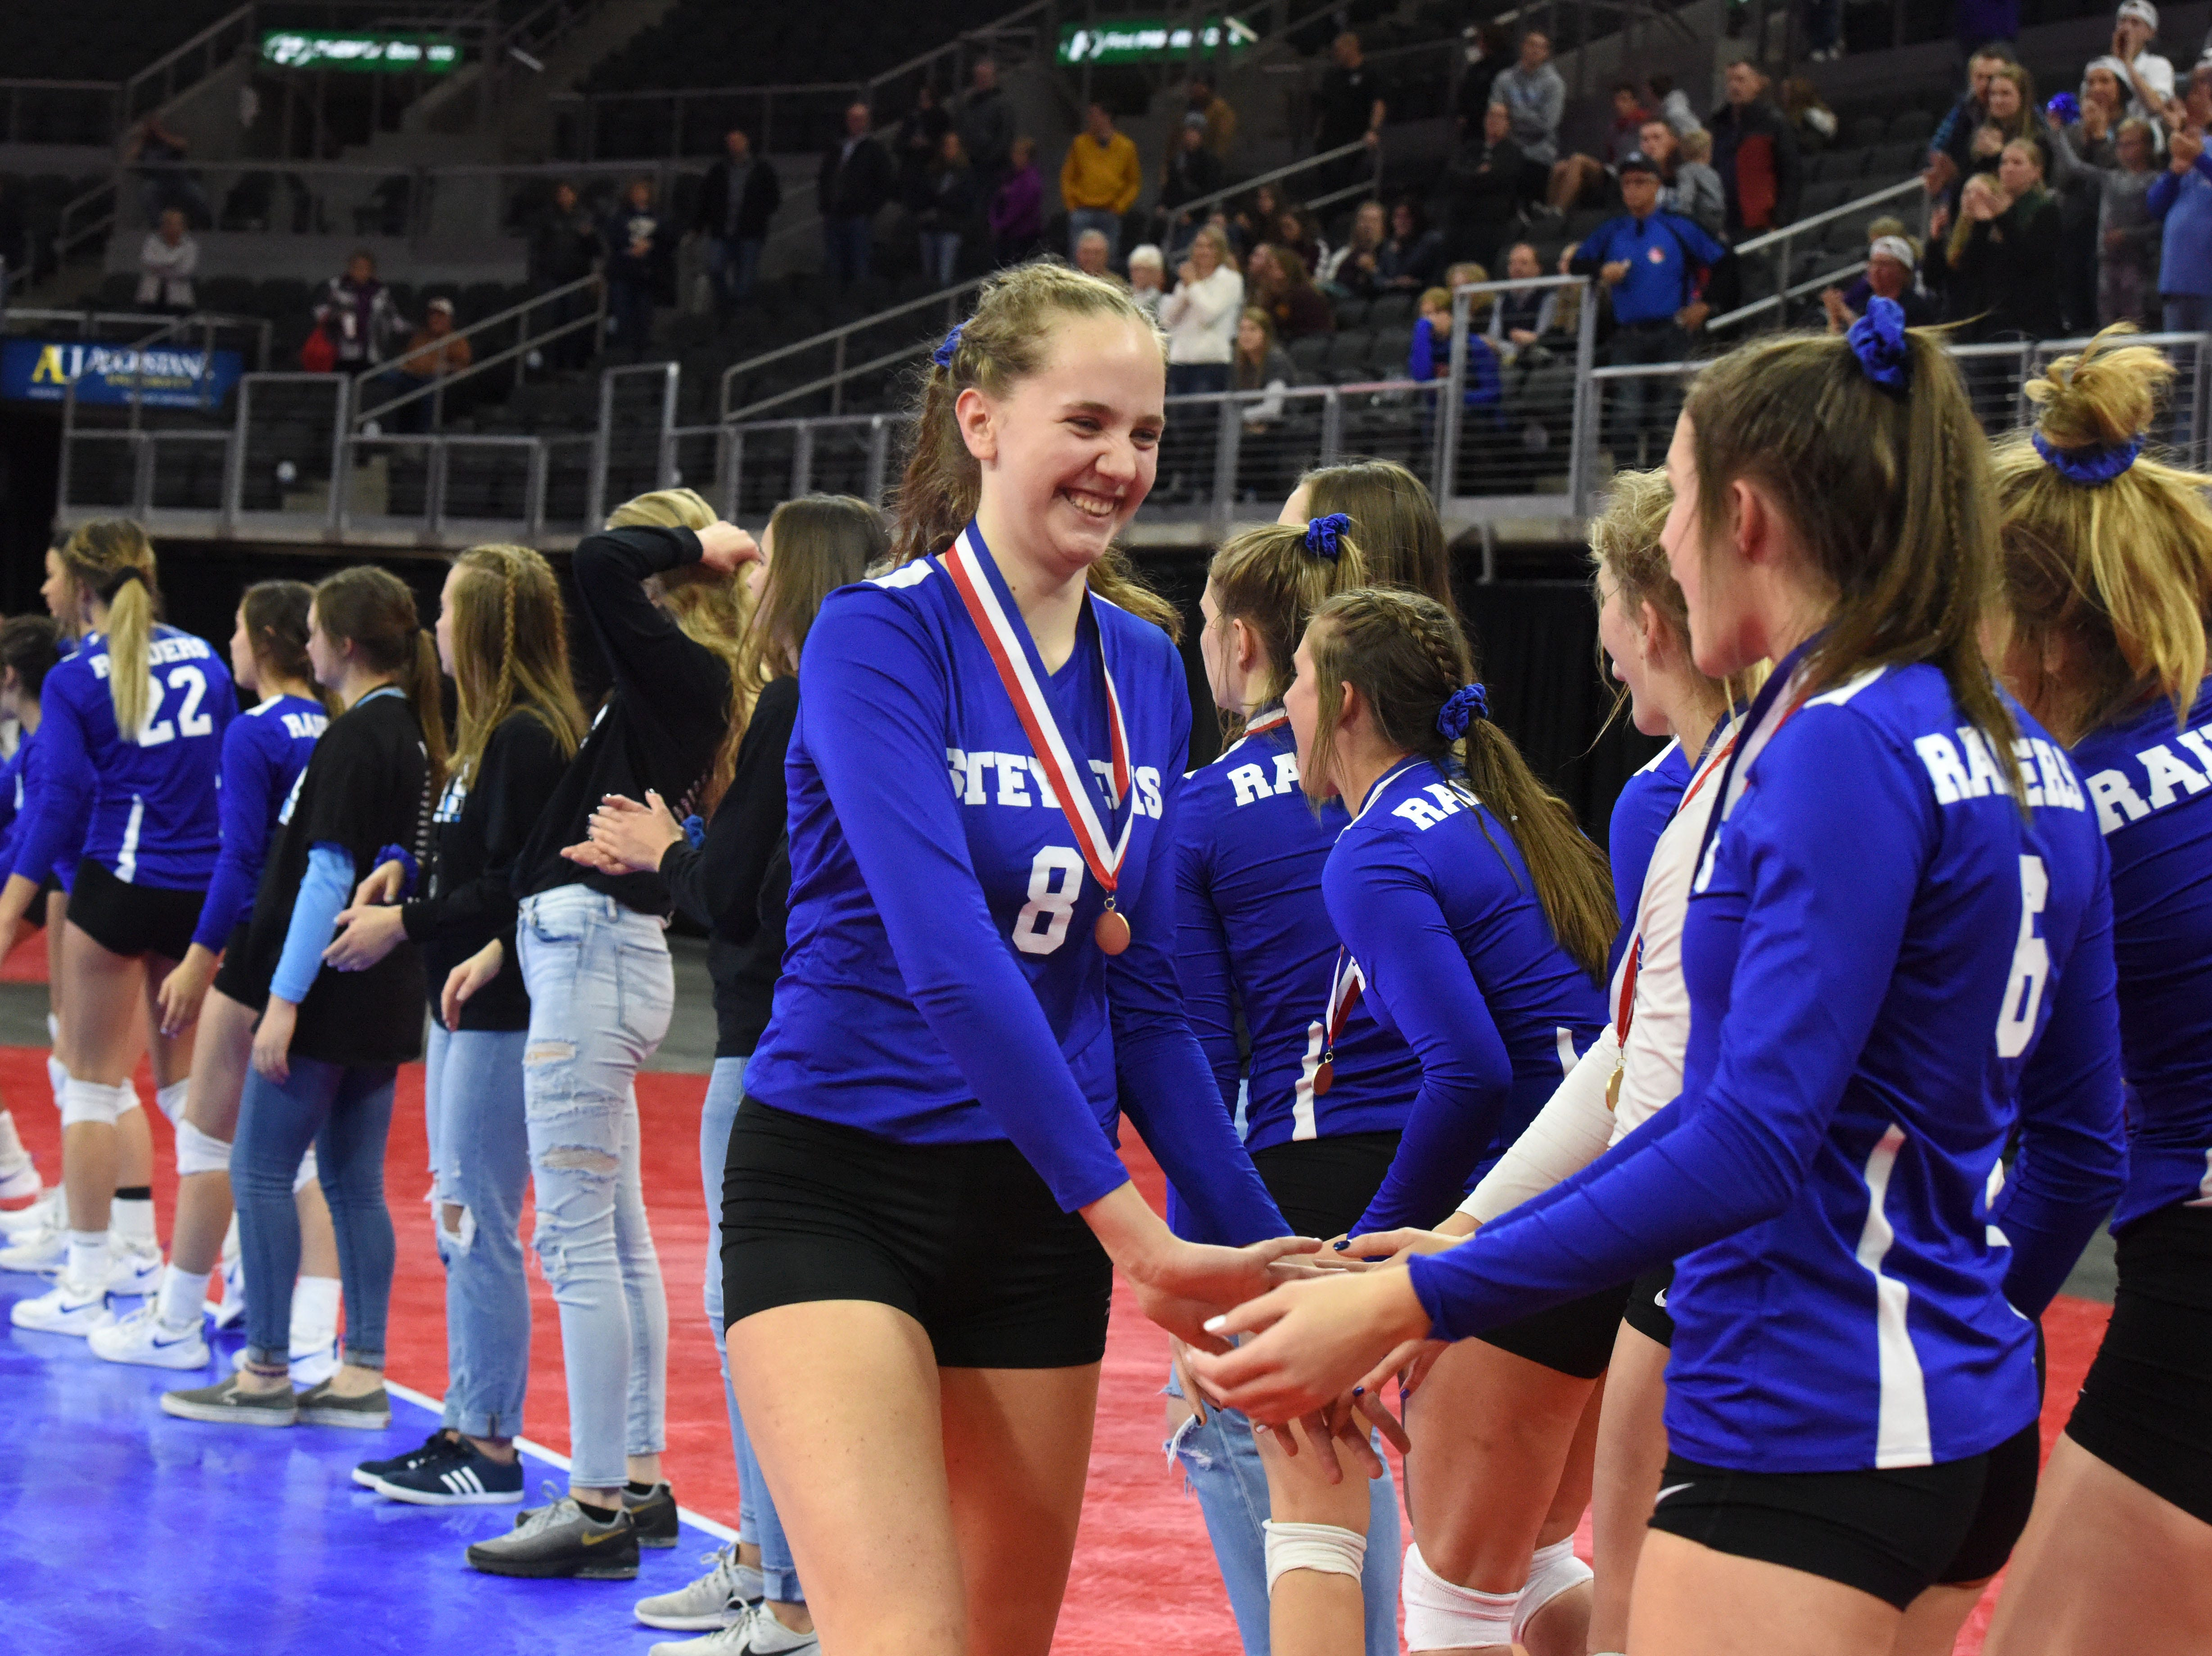 Rapid City's Phebie Rossi (8) celebrates with her teammates after they won the class AA state championship, Saturday, Nov. 17, 2018, at the Denny Sanford Premier Center in Sioux Falls, S.D.